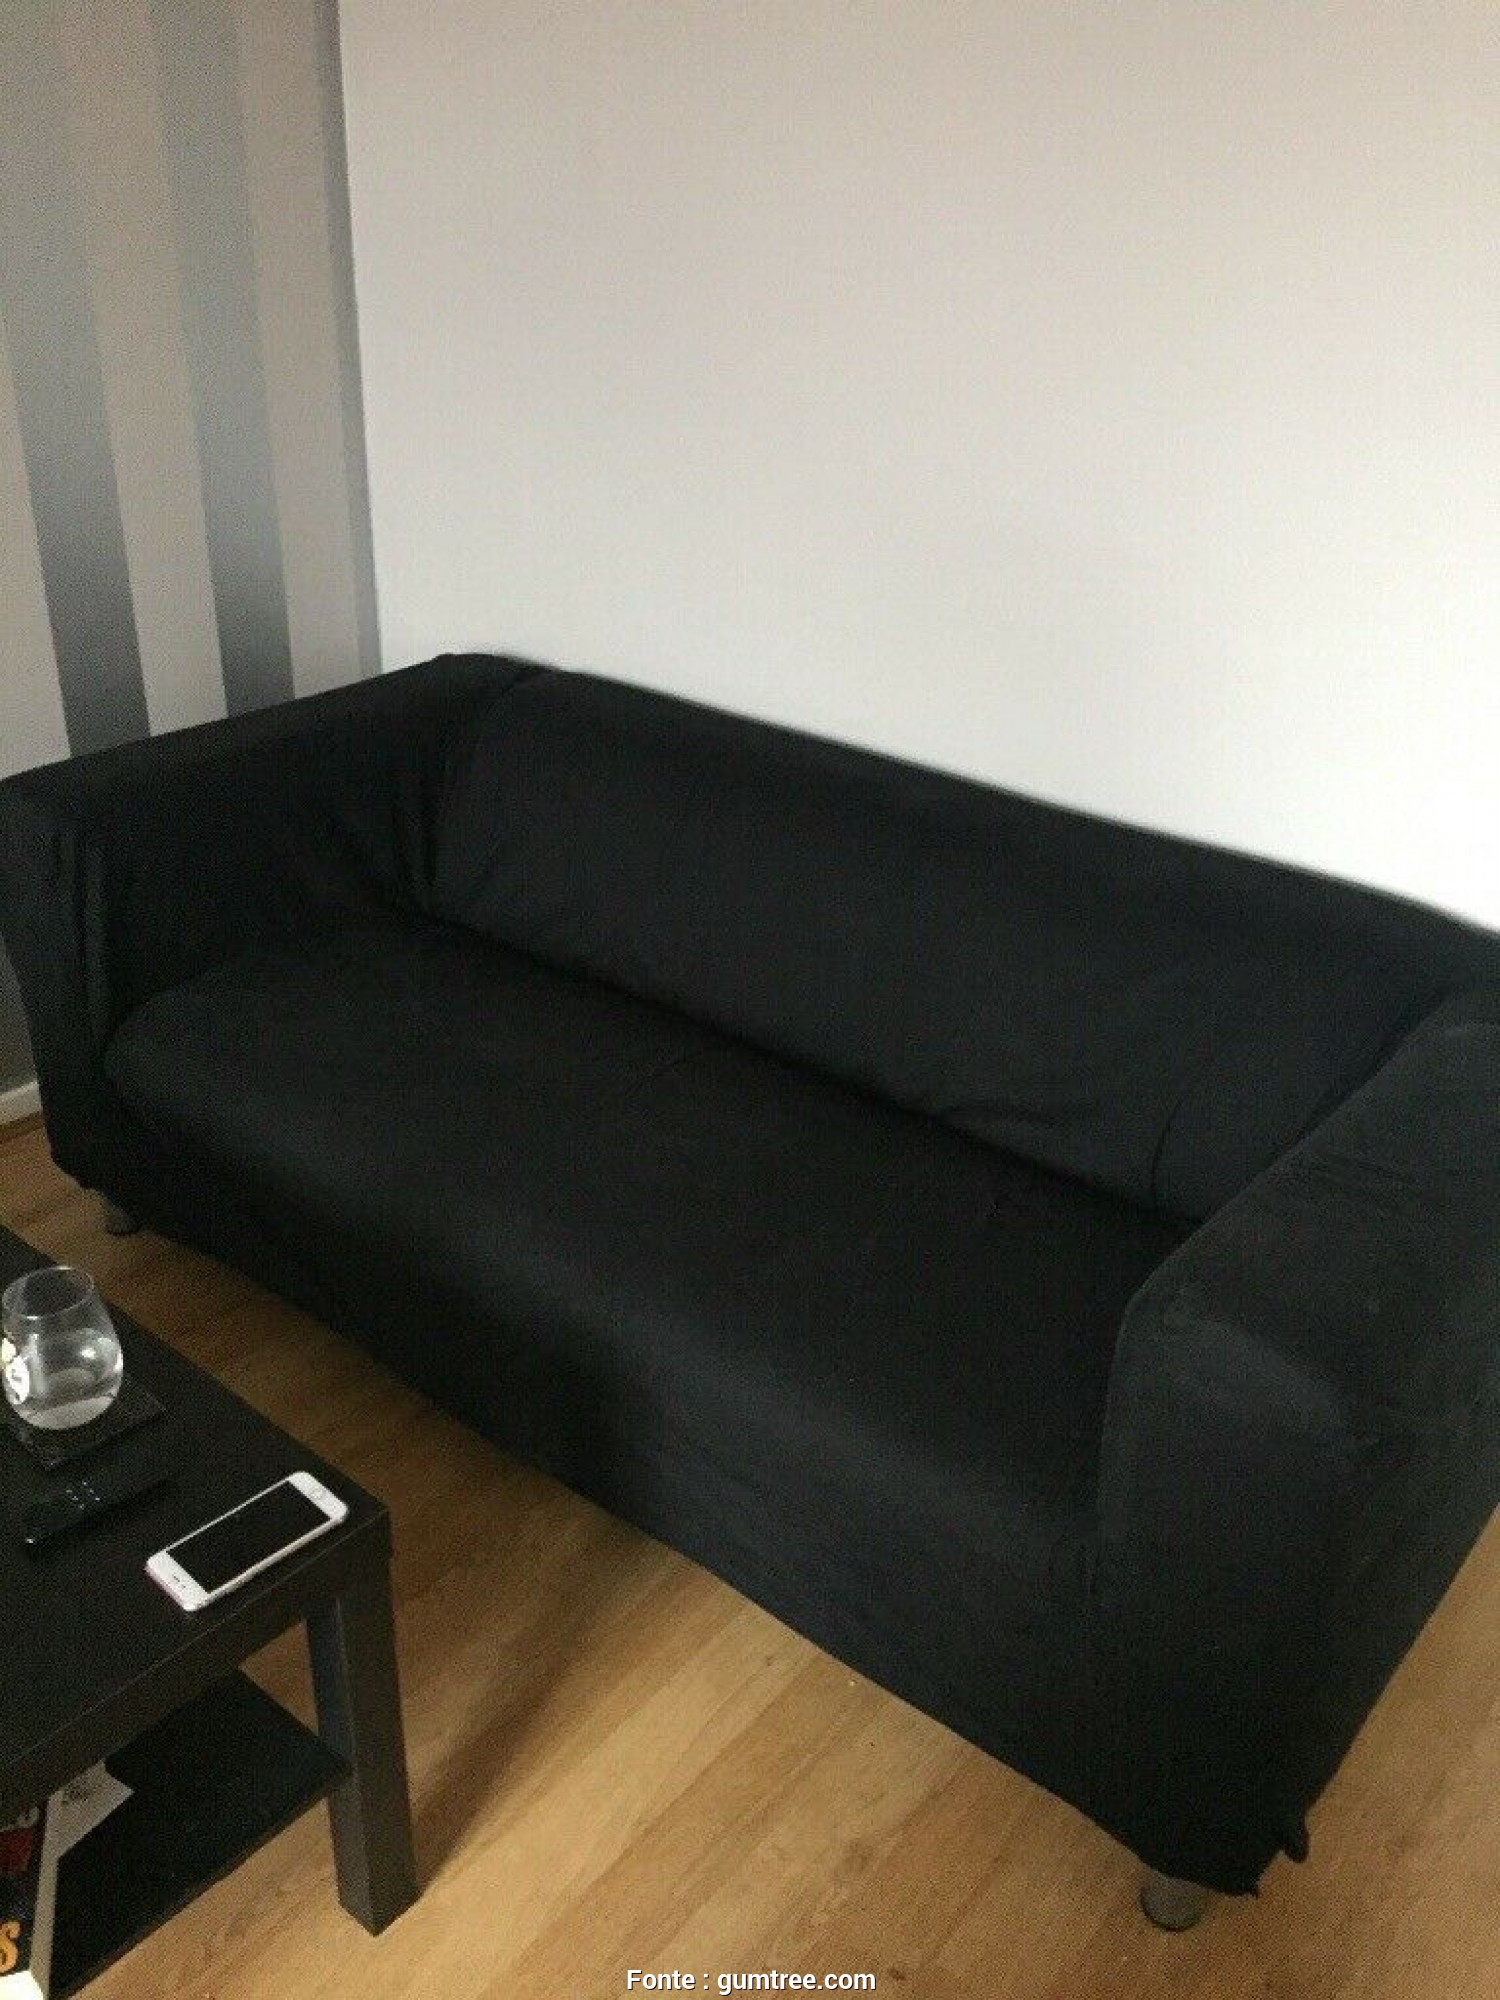 Ikea Klippan Sofa, Sale, Stupefacente Ikea Klippan Sofa, In Skewen, Neath Port Talbot, Gumtree